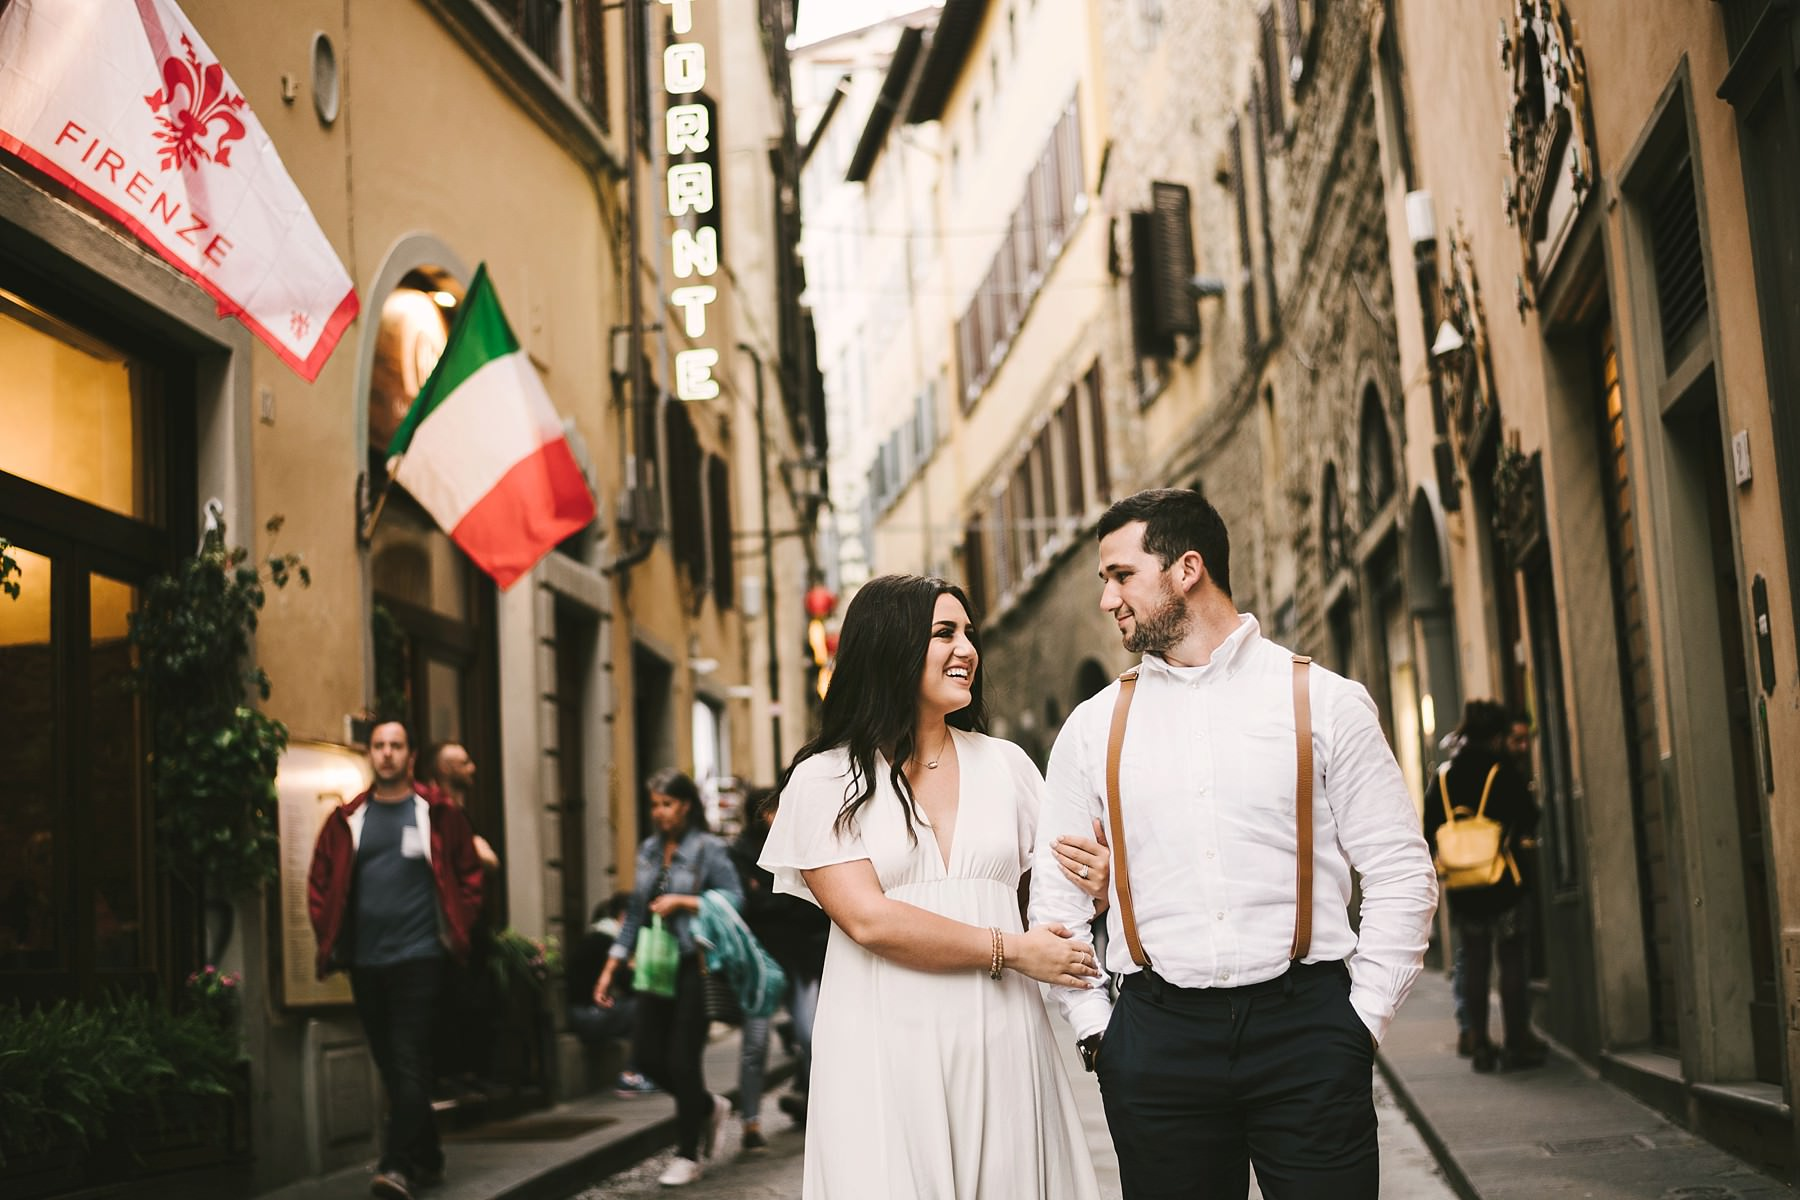 Lovely Florence walk tour photo shoot in the historic center. Elopement wedding photo session